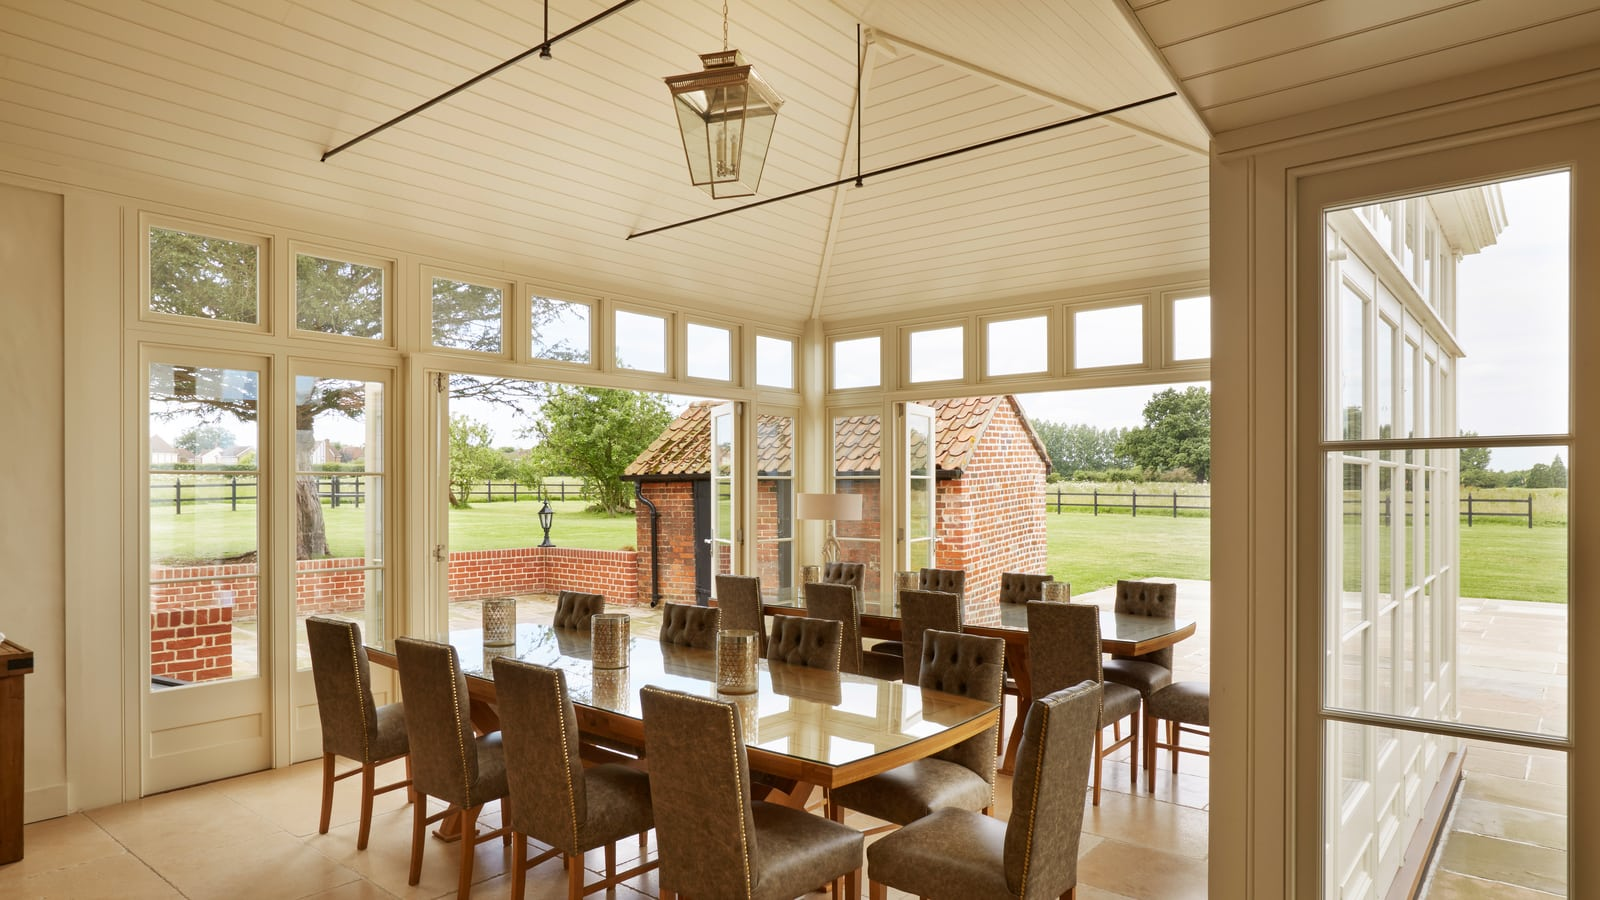 Dining Area inside large orangery